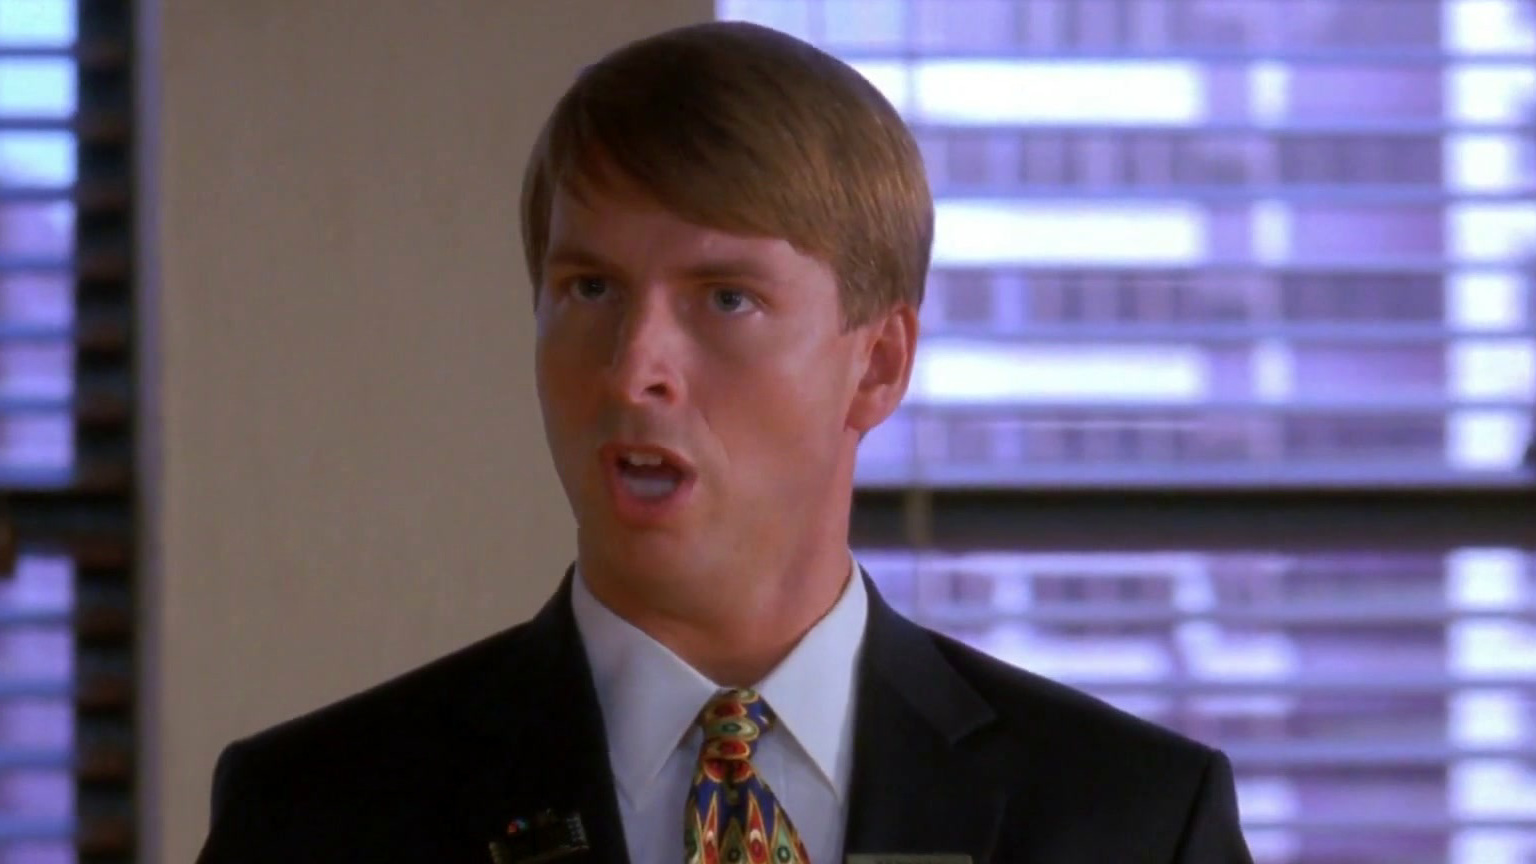 30 Rock: Kenneth Parcell's Last Party Ever